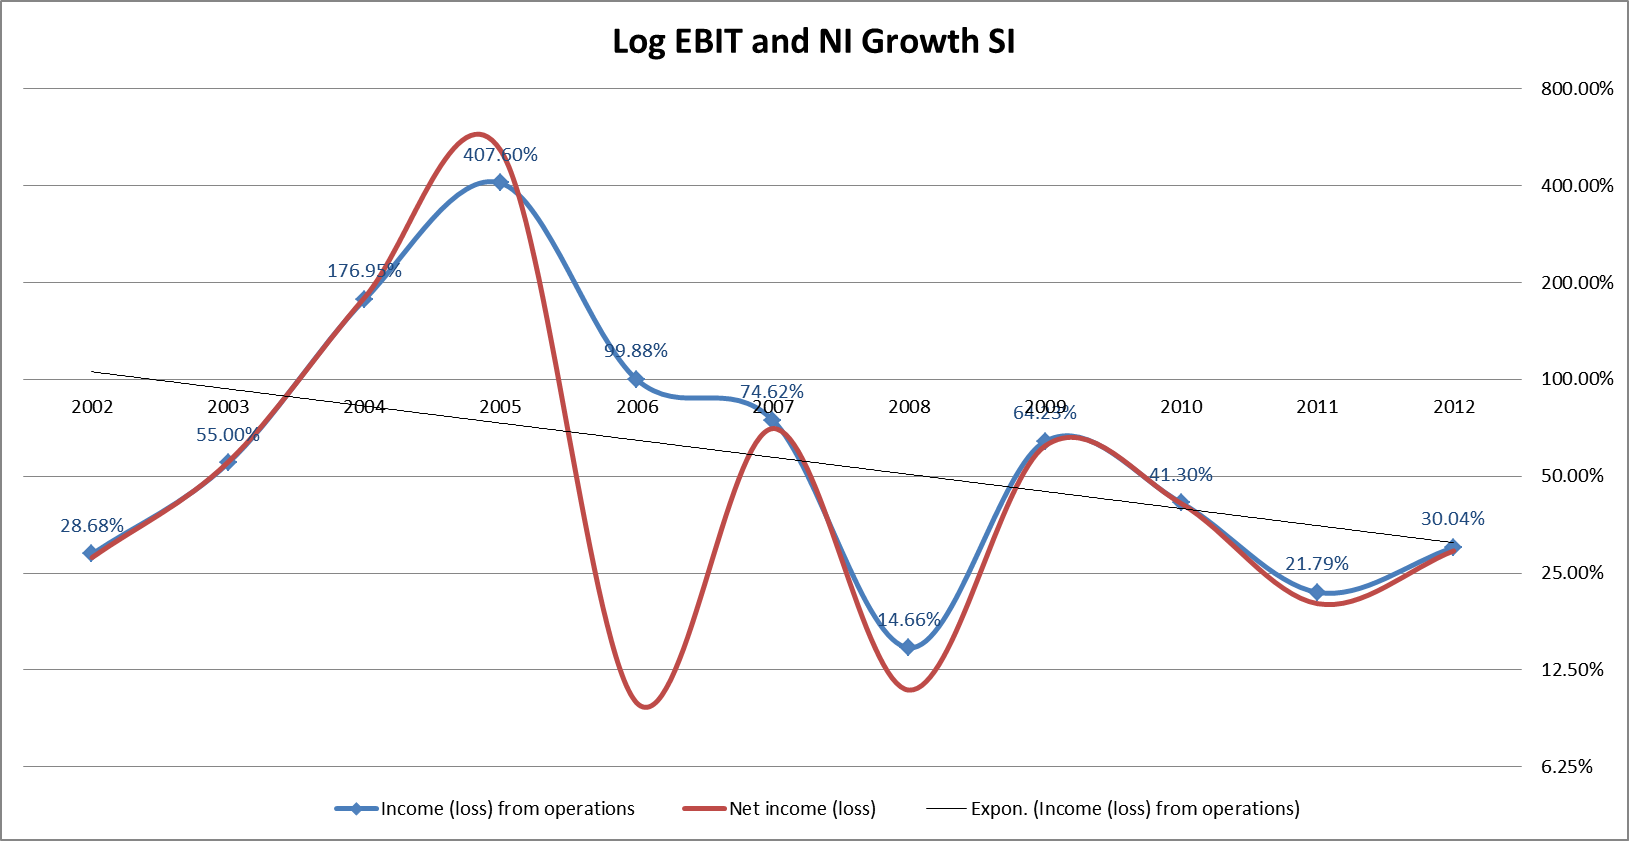 Ebit NI growth Log